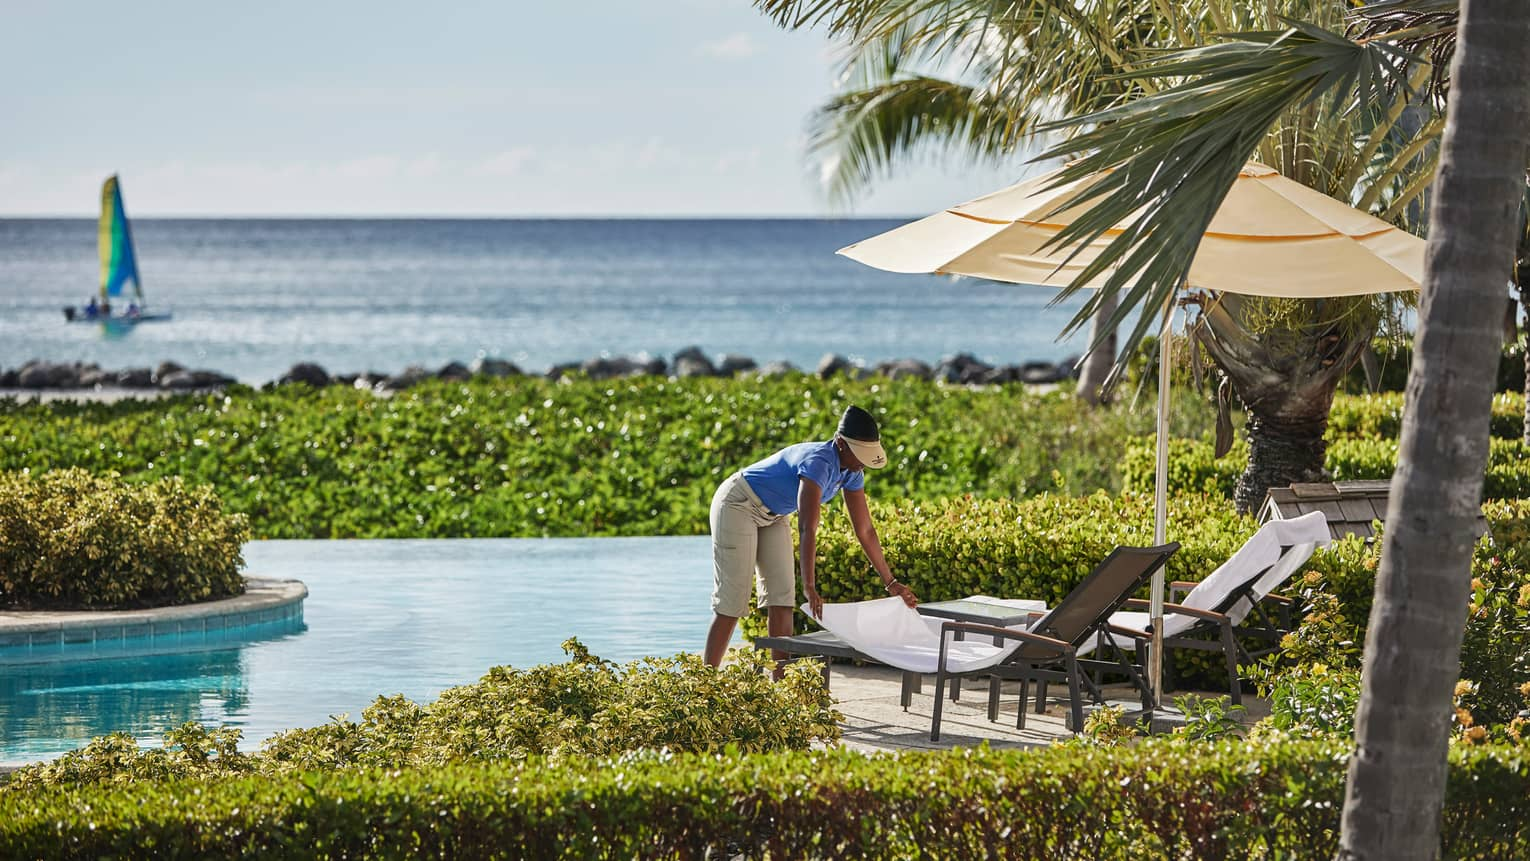 Hotel staff sets patio chair on Ocean Pool deck, boat sailing on Caribbean Sea